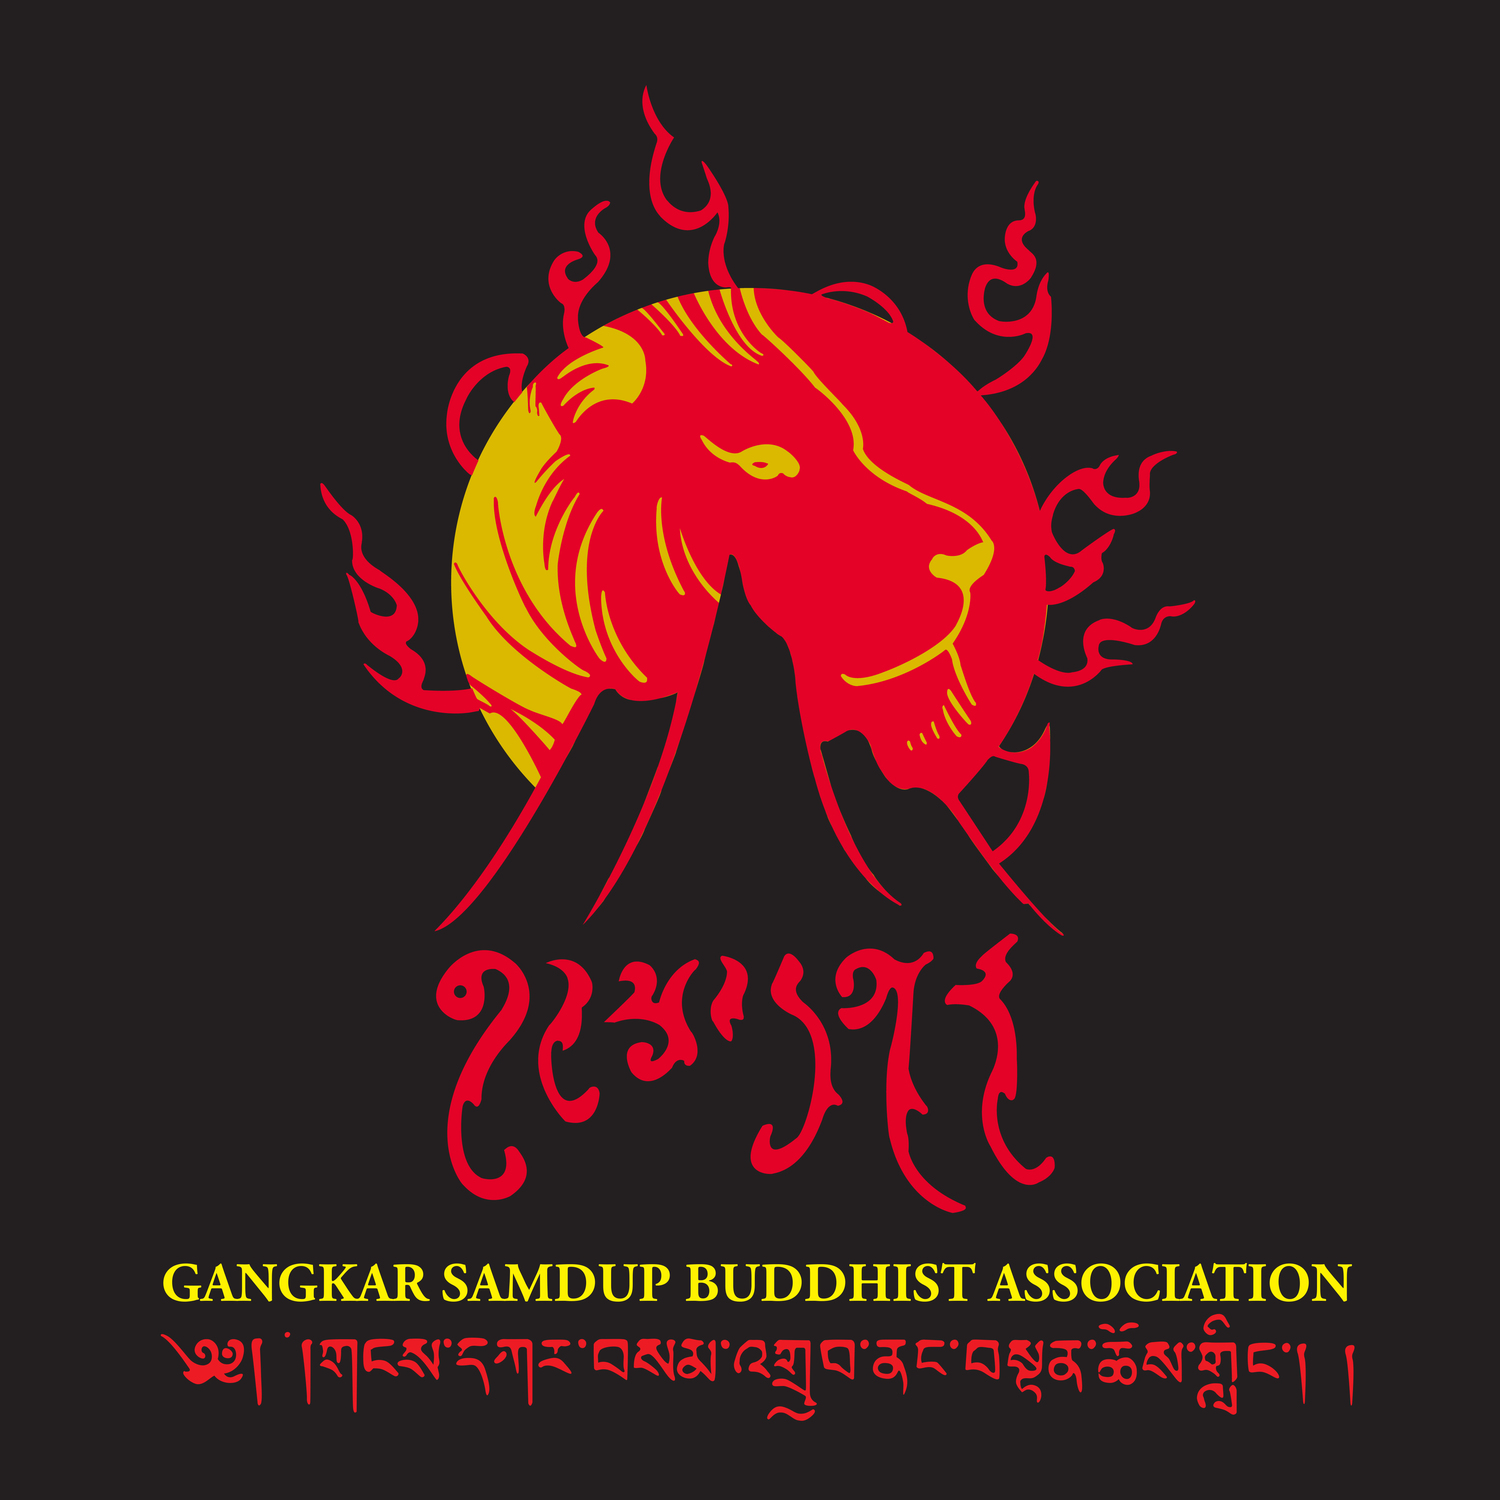 GANGKAR SAMDUP BUDDHIST ASSOCIATION